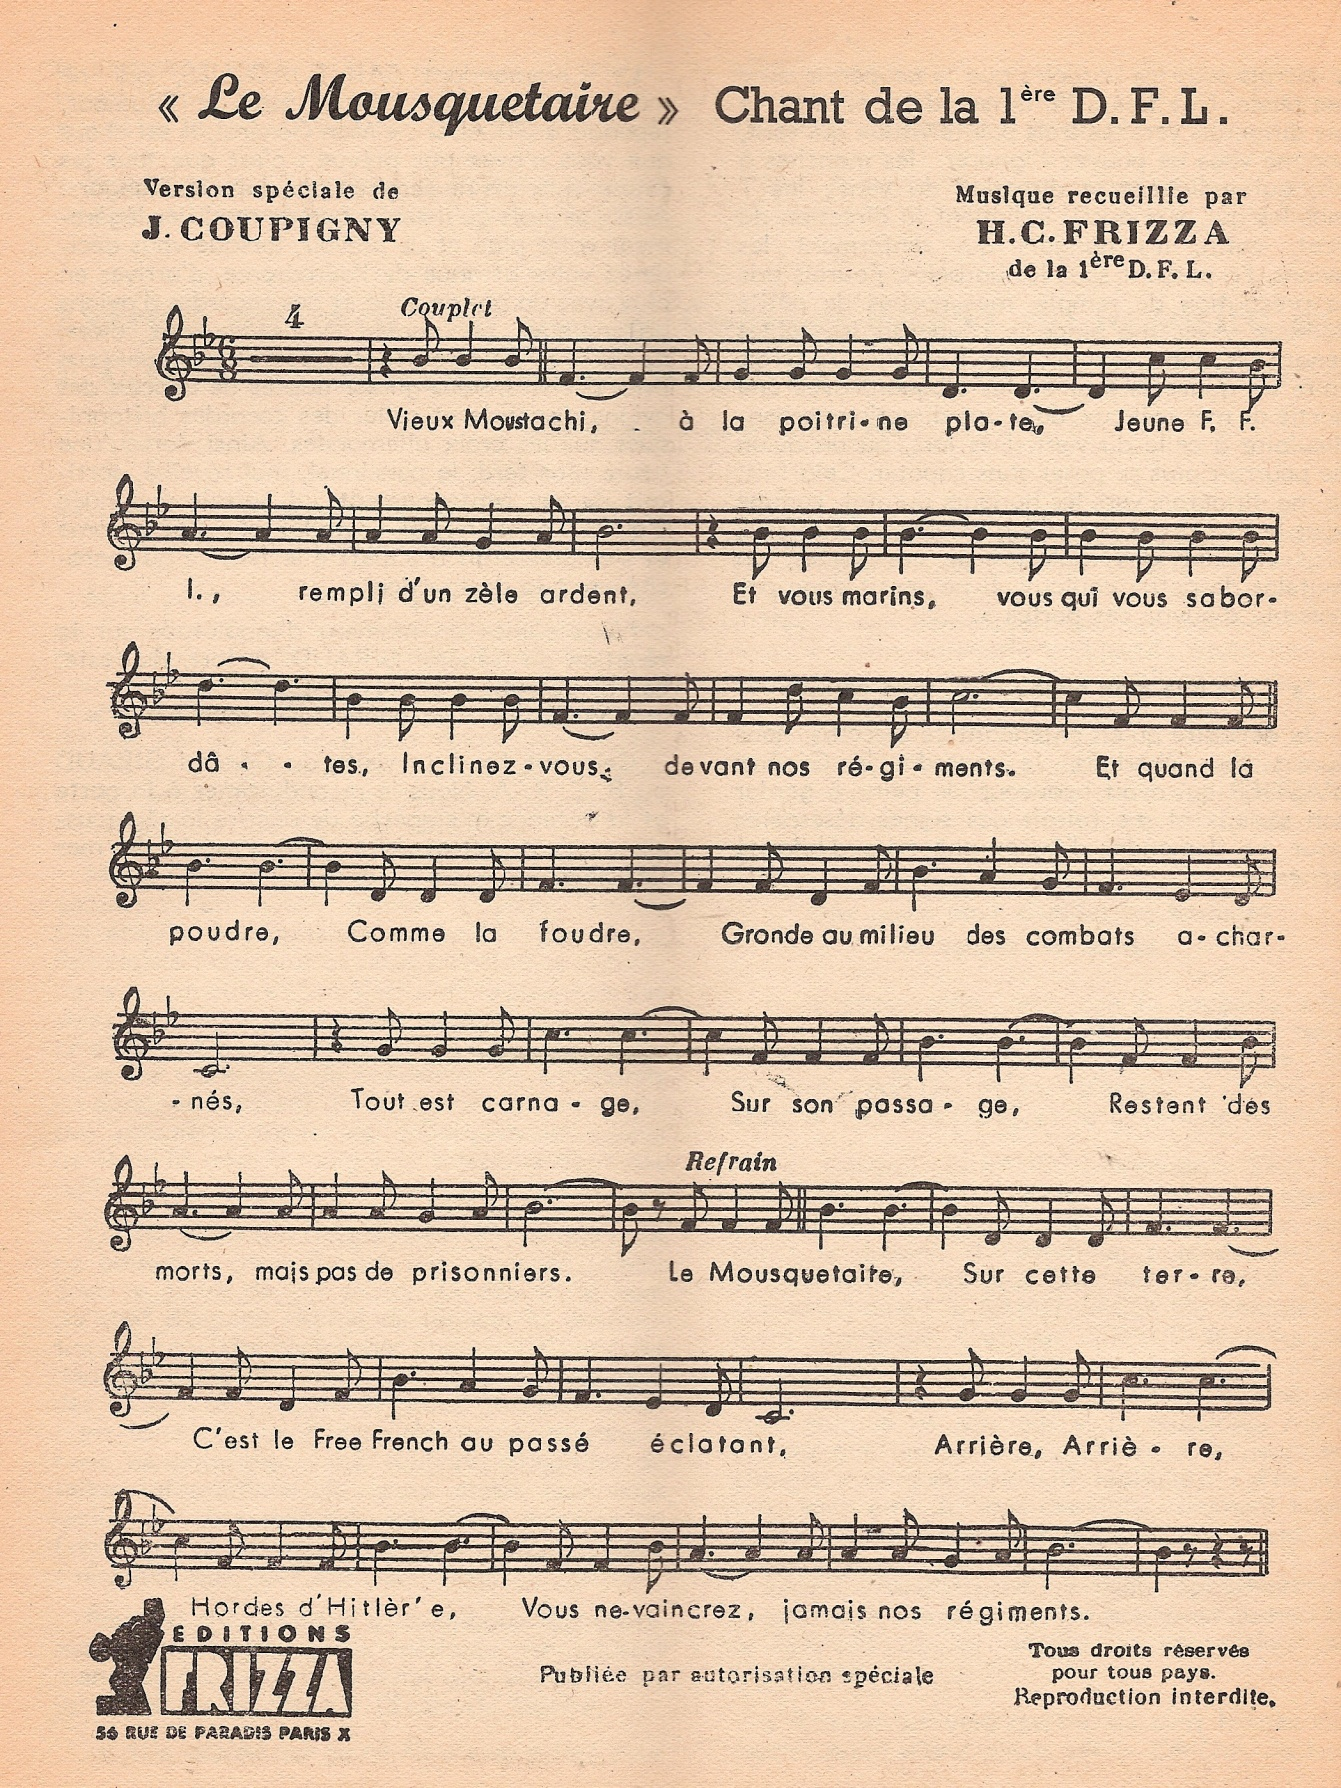 Apprenez, chantez « Le Mousquetaire », chant de la 1re D.F.L.